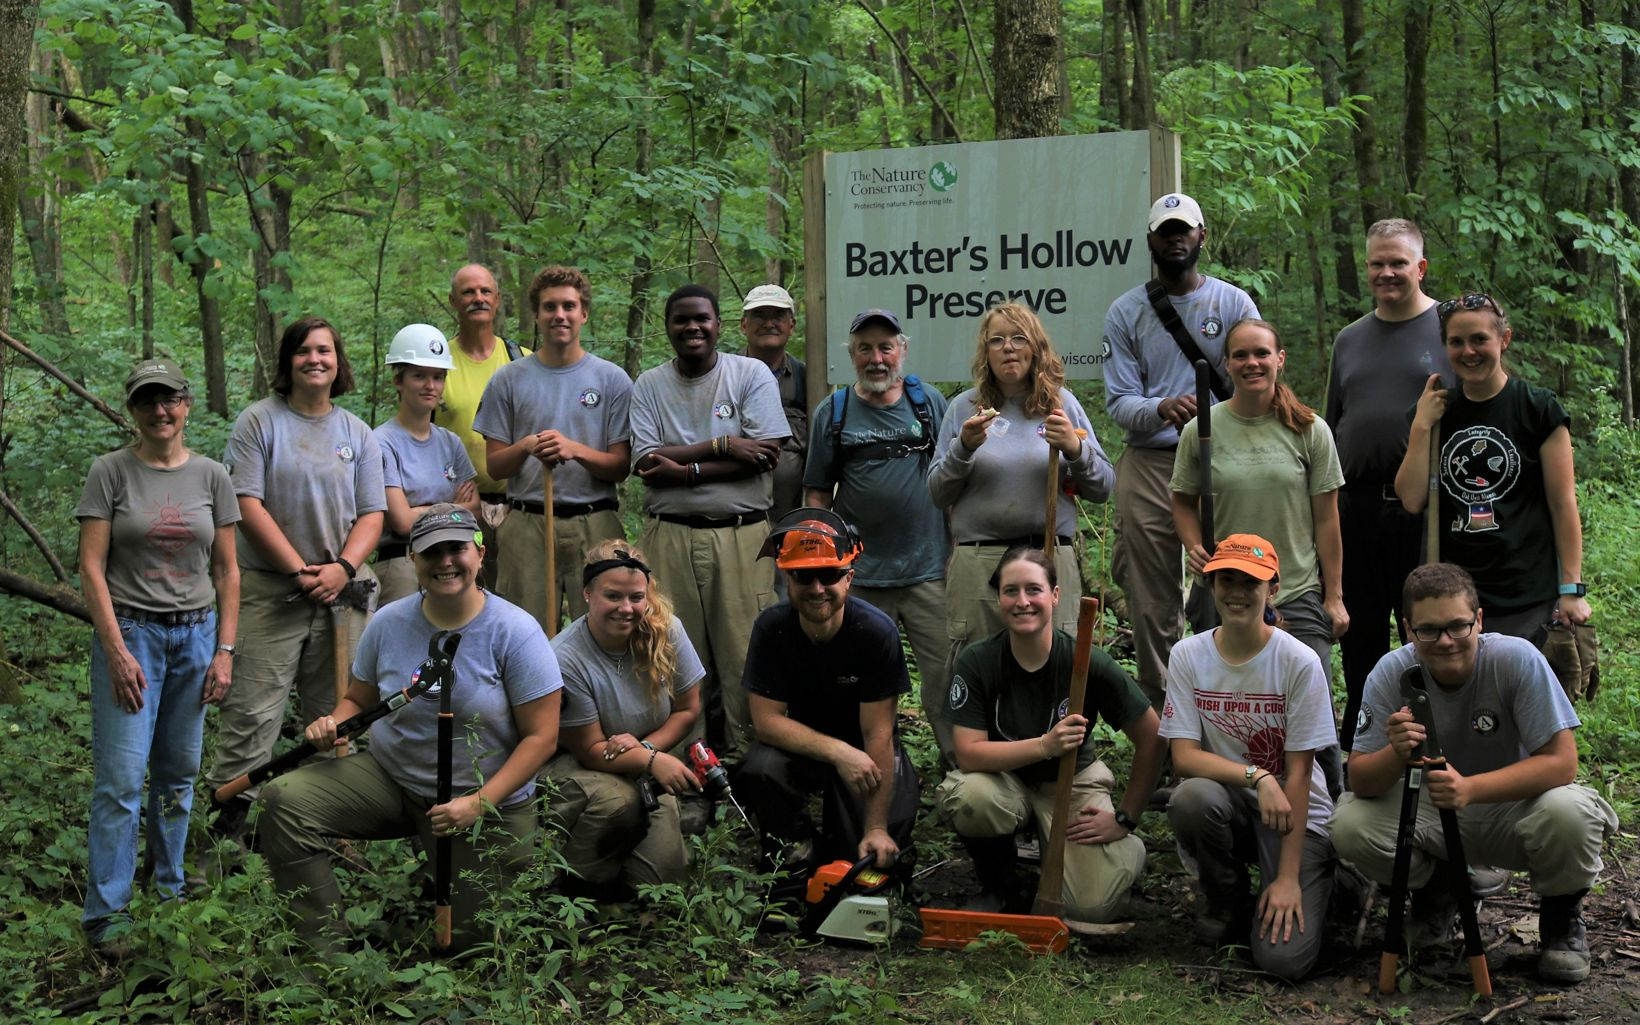 AmeriCorps NCCC crews work with volunteers and staff to improve hiking trails on preserves during the summer.